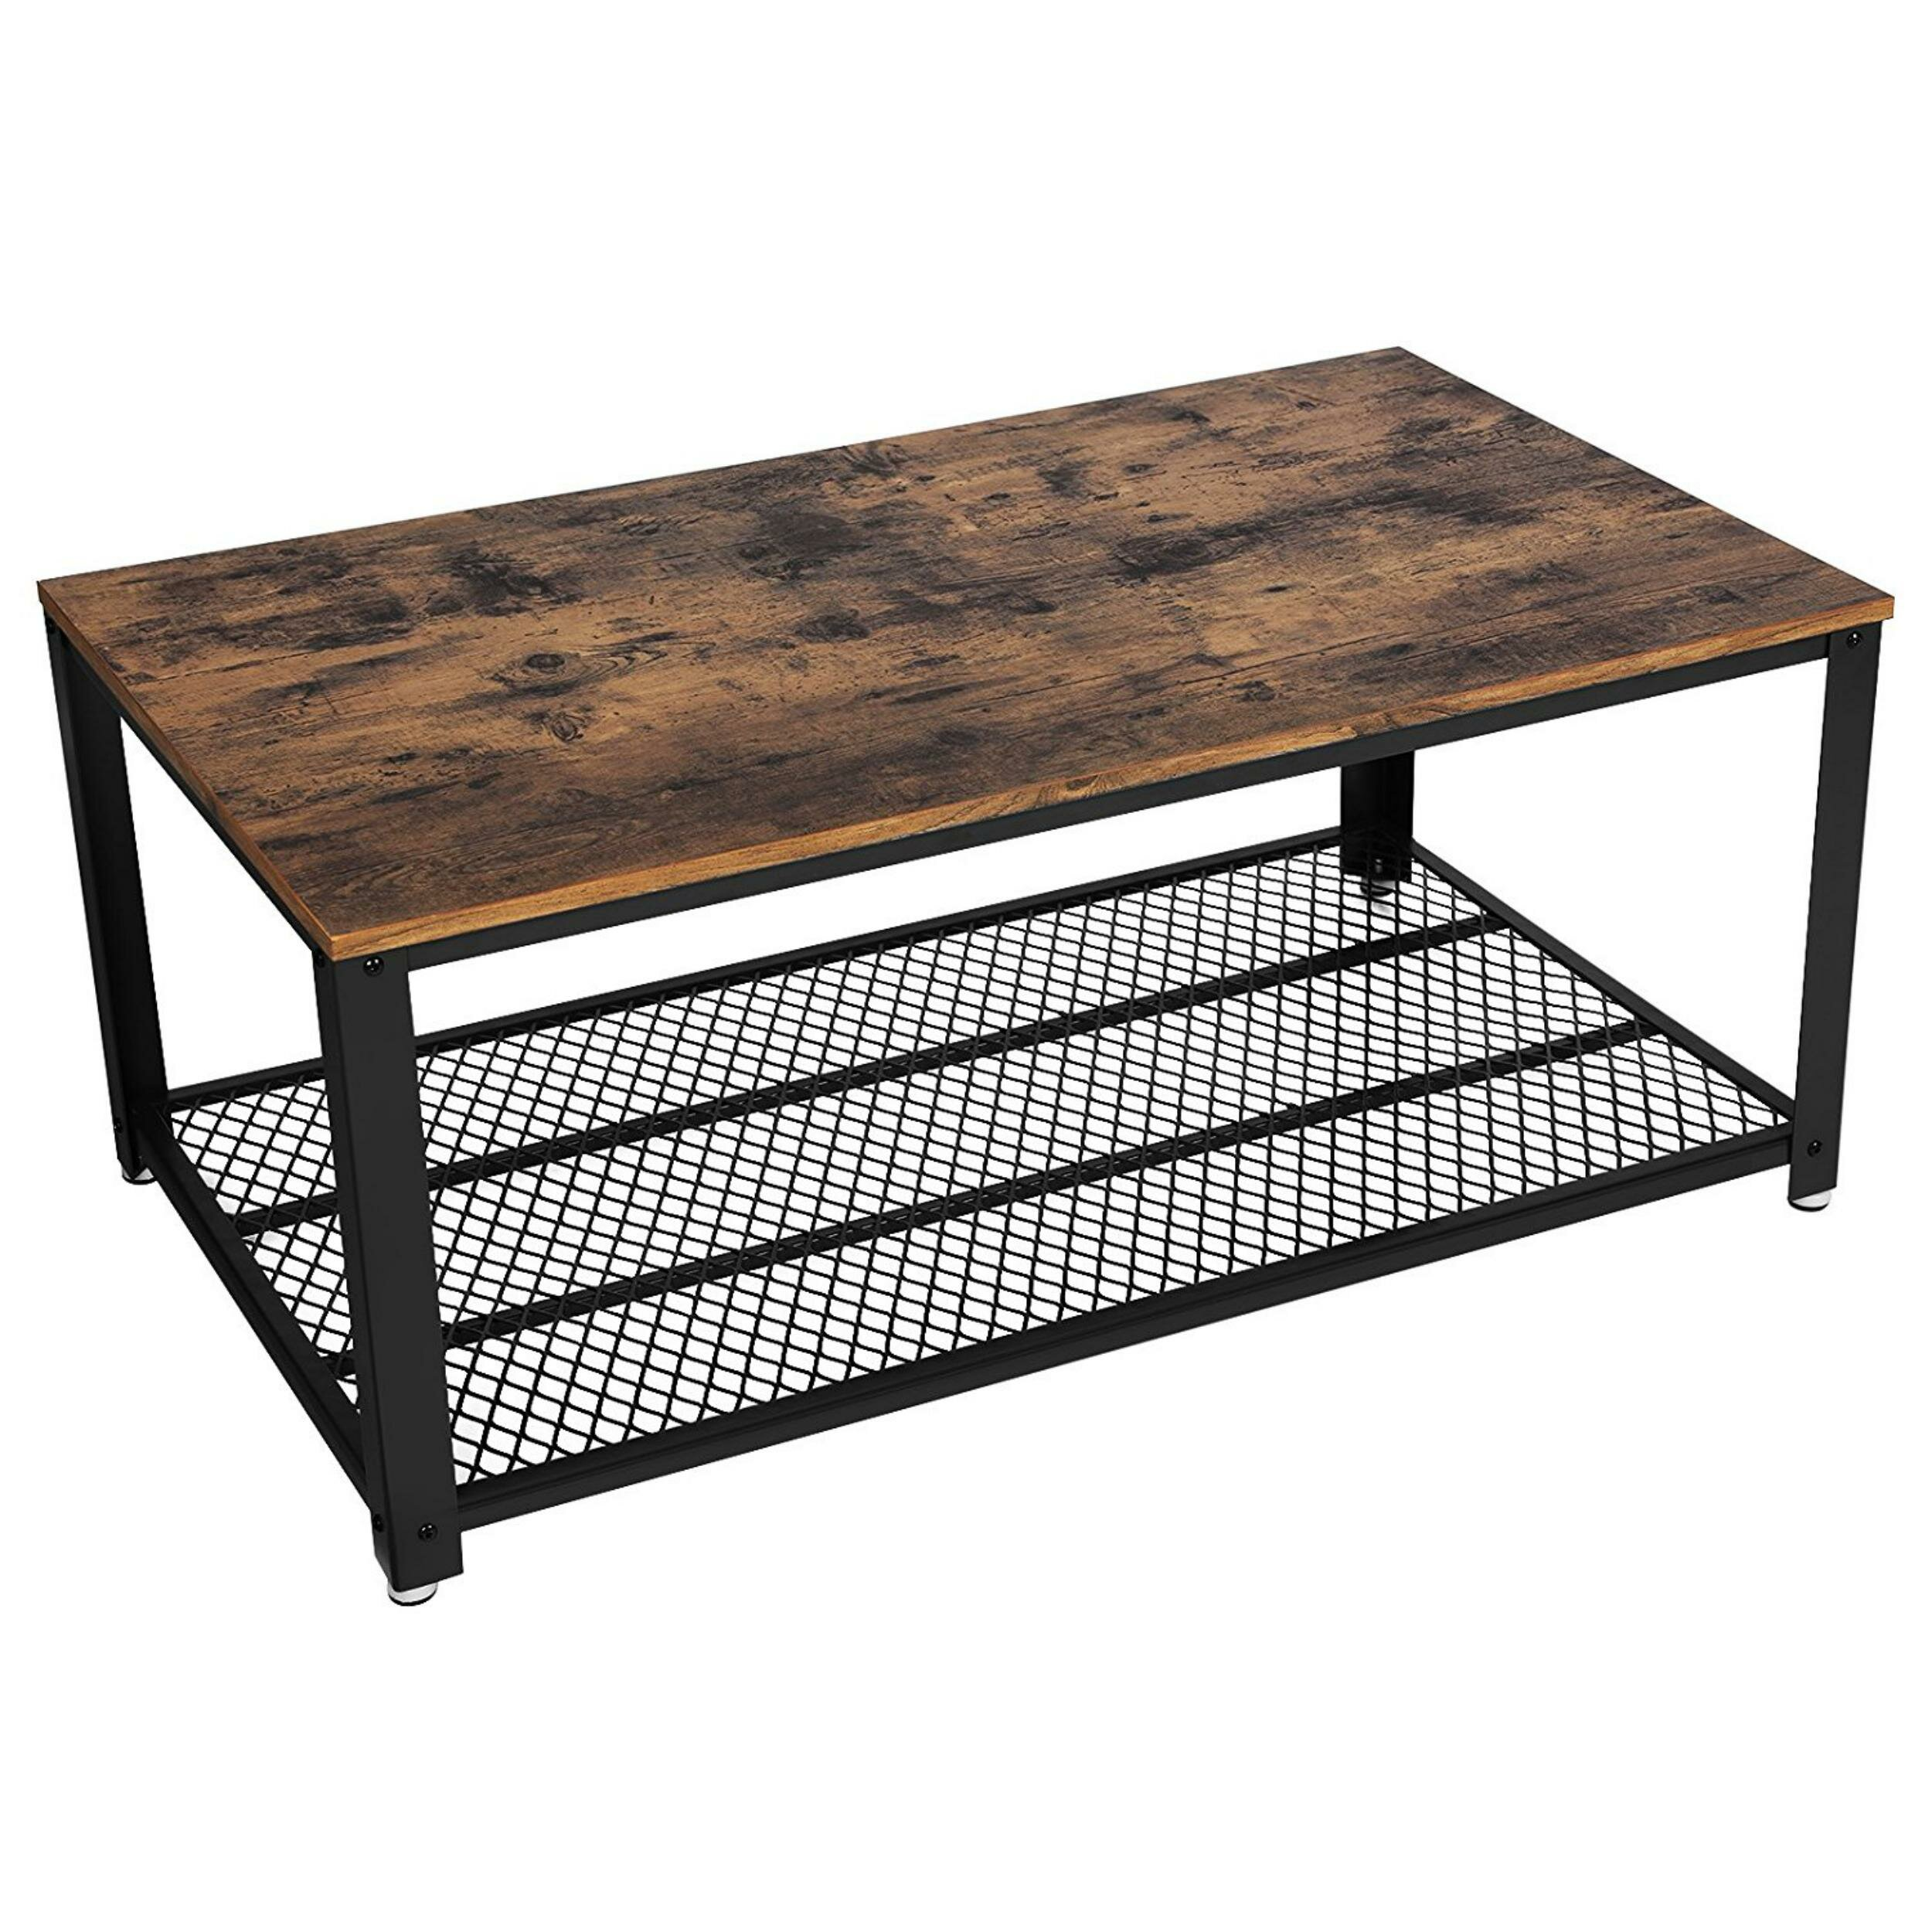 Williston Forge Landis Metal Frame Coffee Table With Tray